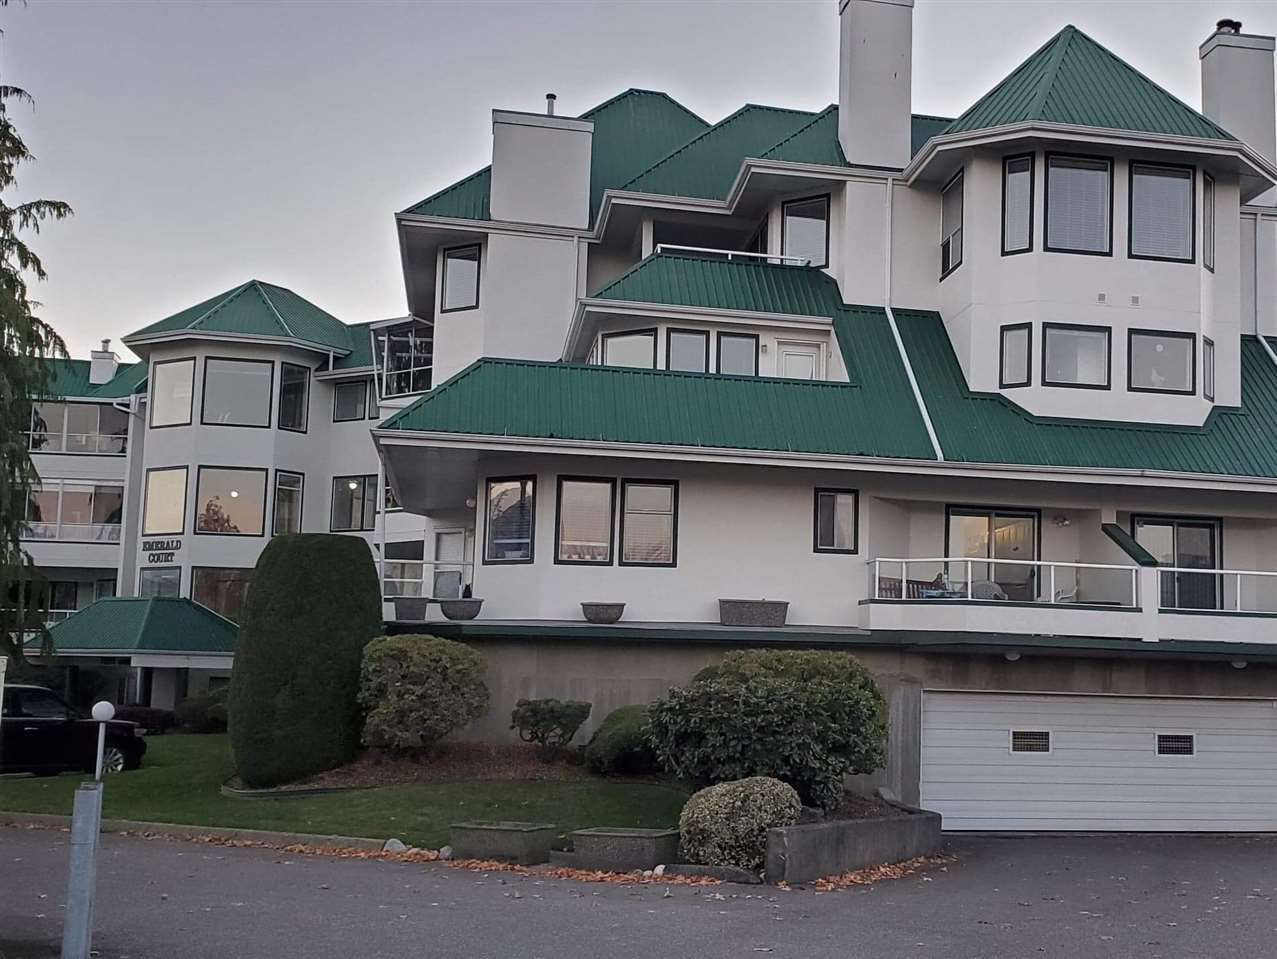 """Main Photo: 203 7651 AMBER Drive in Sardis: Sardis West Vedder Rd Condo for sale in """"EMERALD COURT"""" : MLS®# R2458203"""